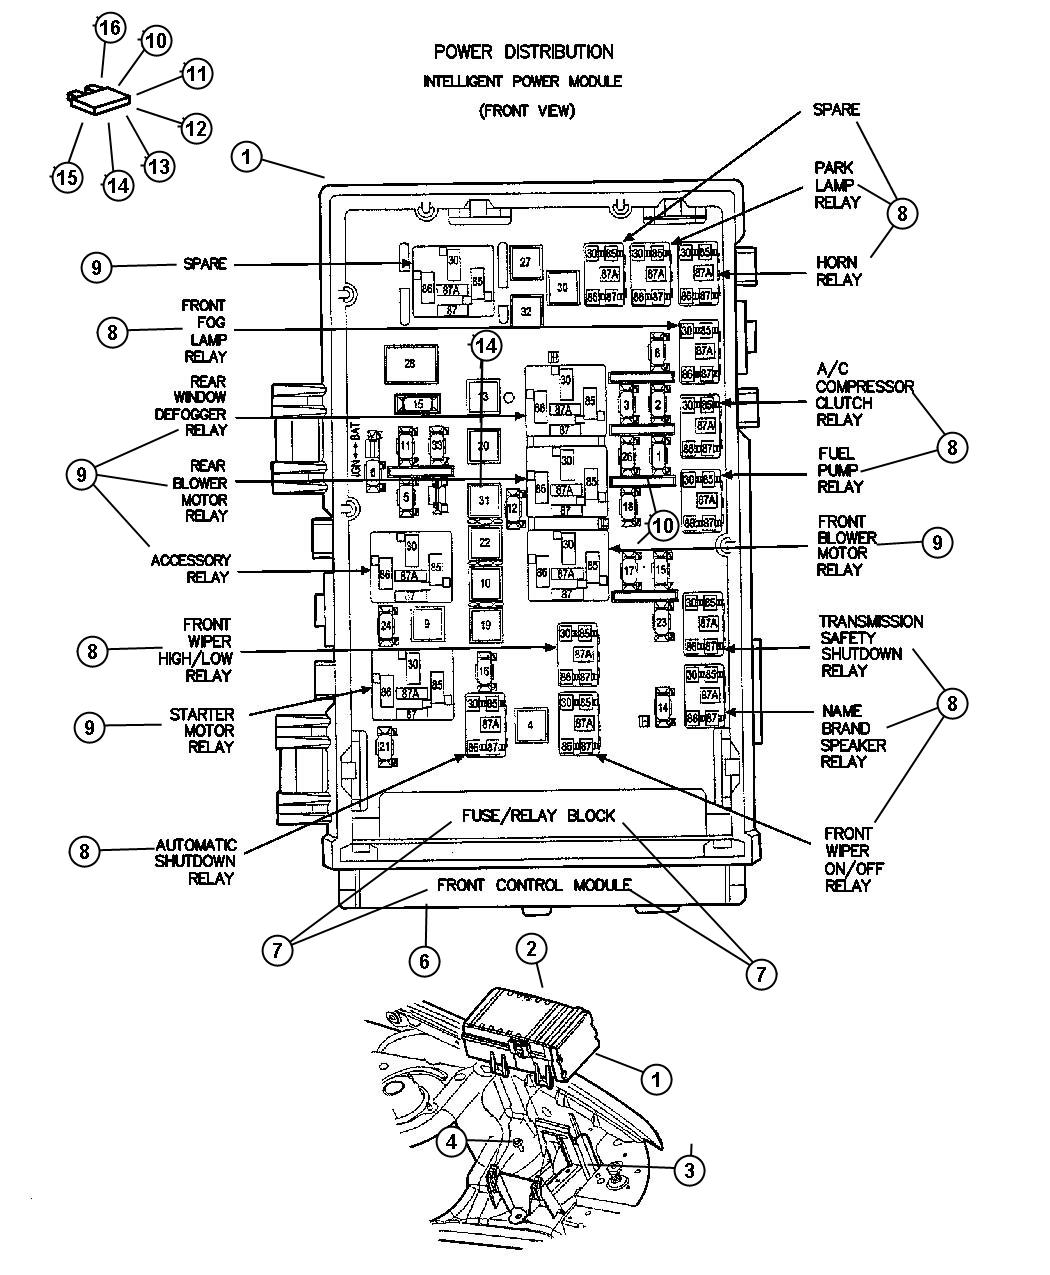 tags: #mopar electronic wiring diagram#ford distributor wiring diagram#mopar  ballast resistor wiring diagram#mopar tach wiring diagram#mopar coil wiring